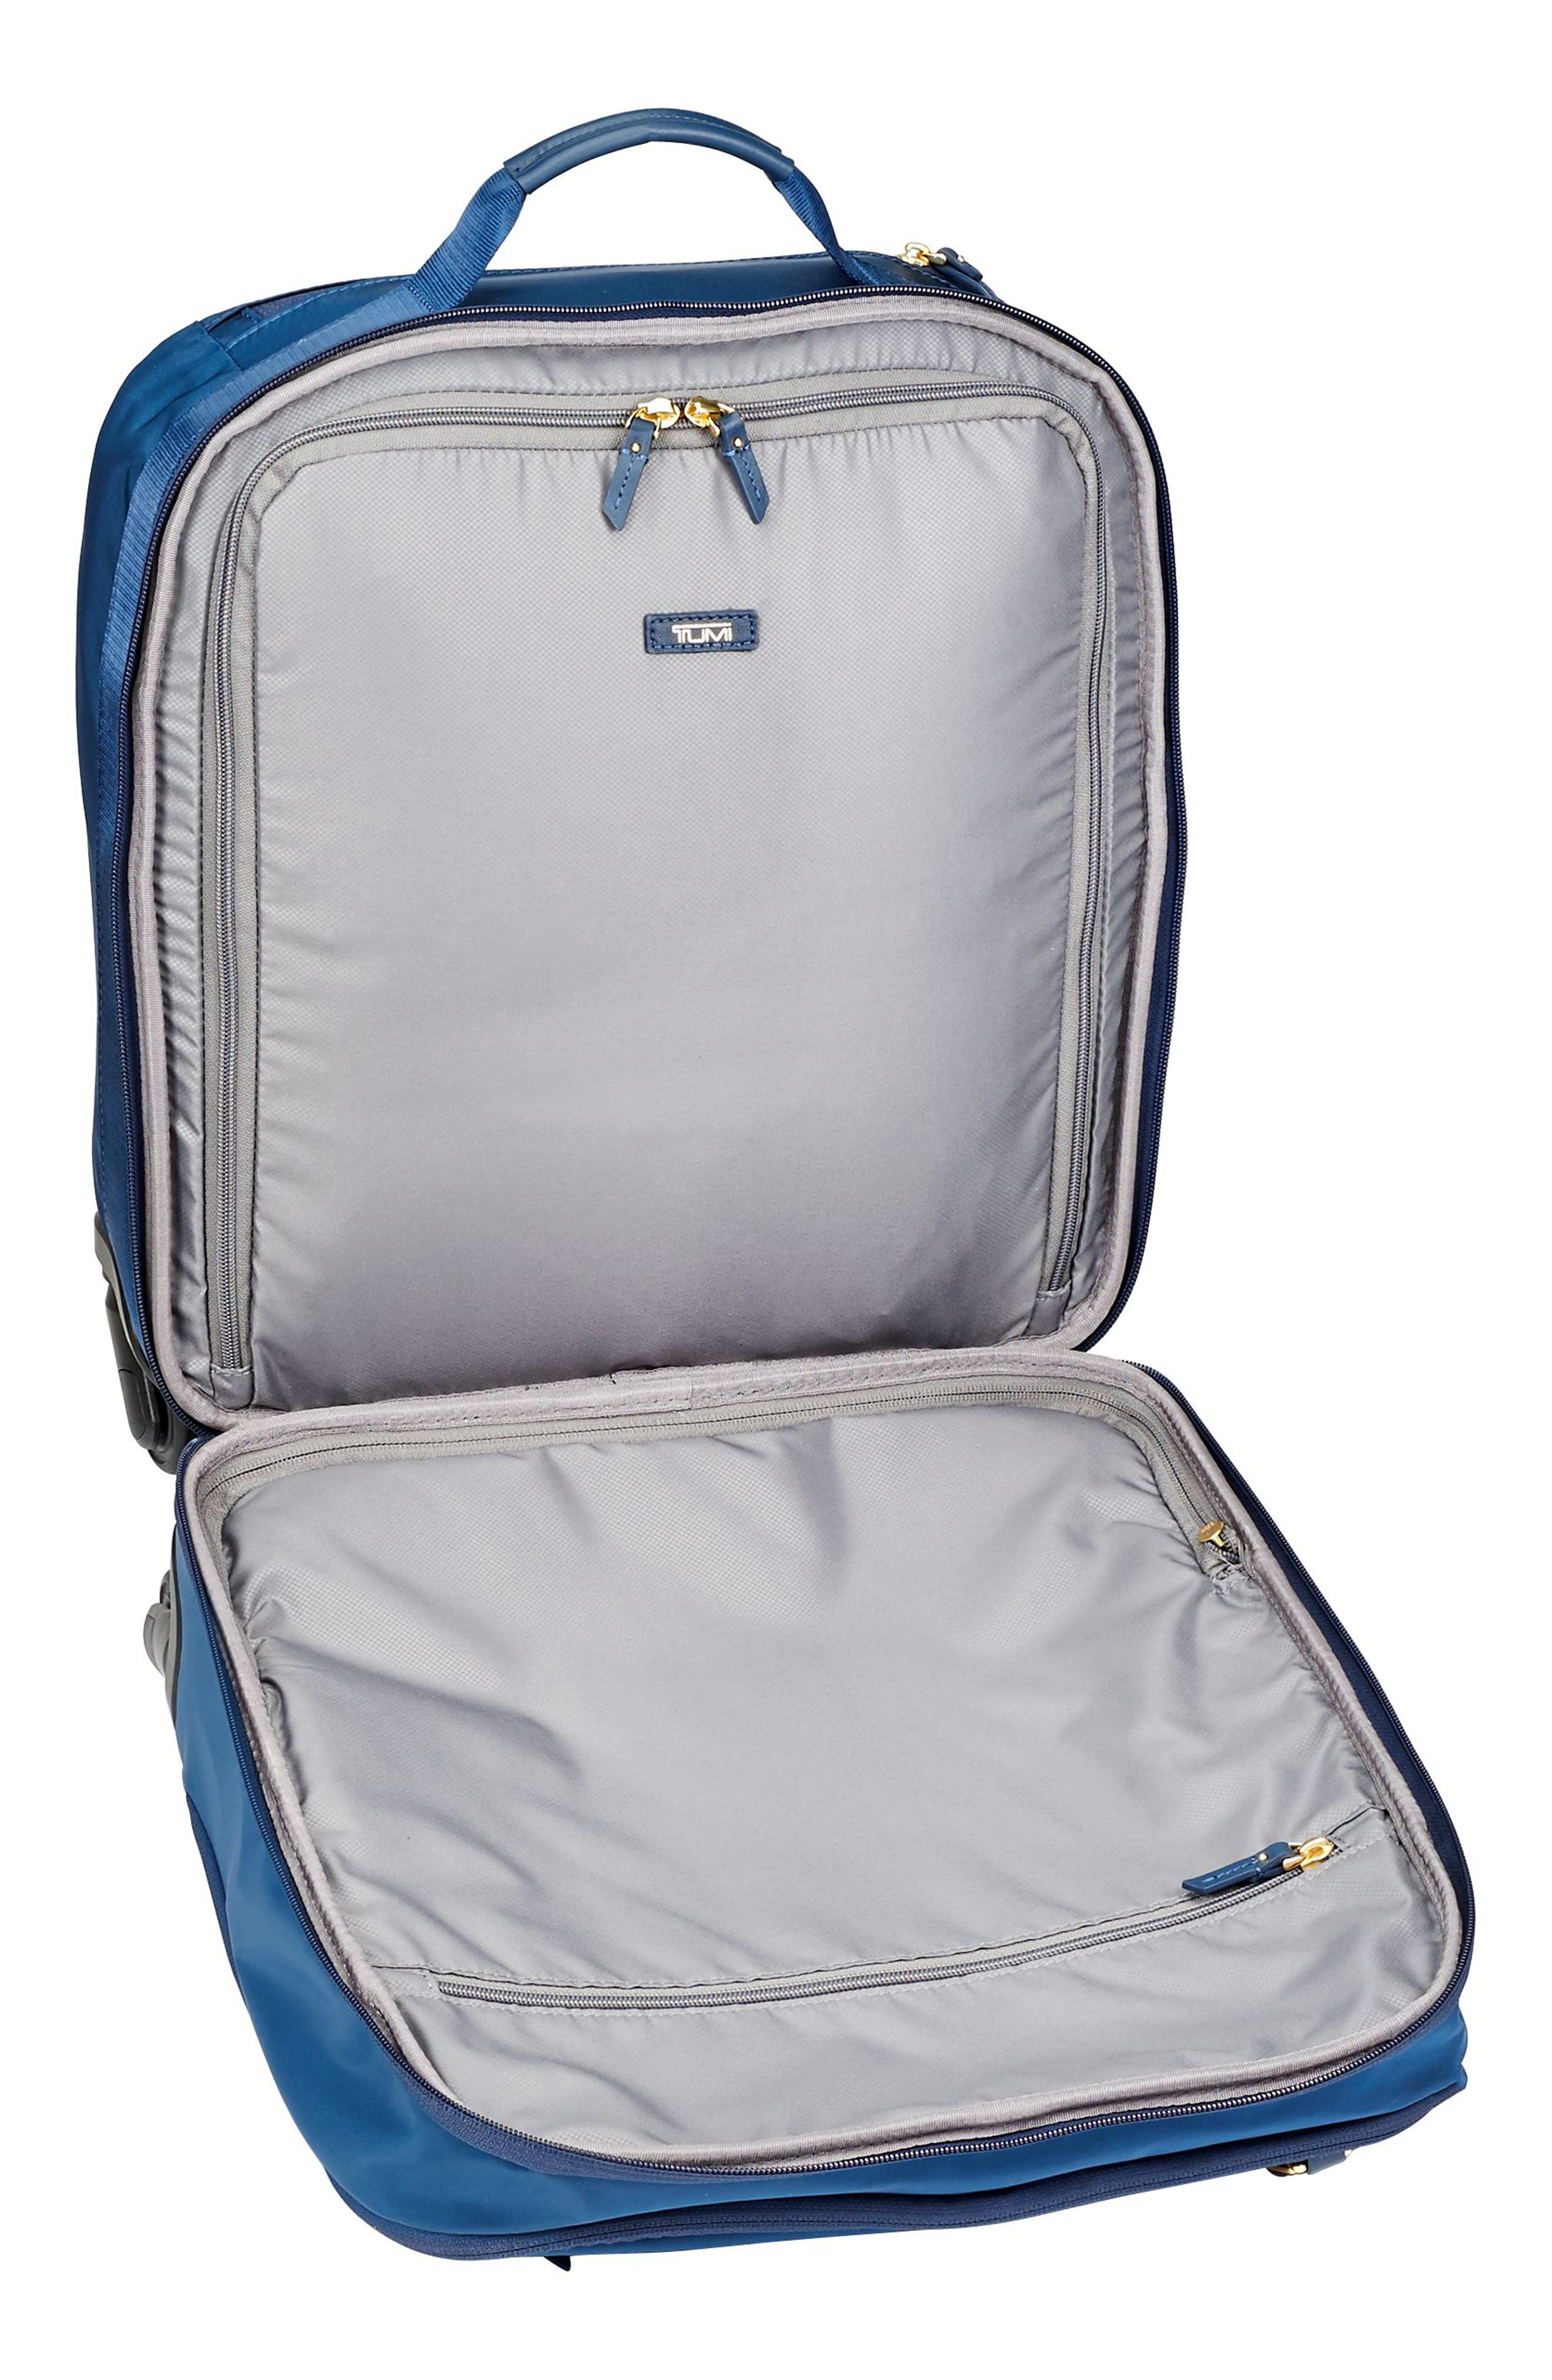 Voyageur - Oslo Compact 15-Inch Wheeled Carry-On,                             Alternate thumbnail 5, color,                             Ocean Blue